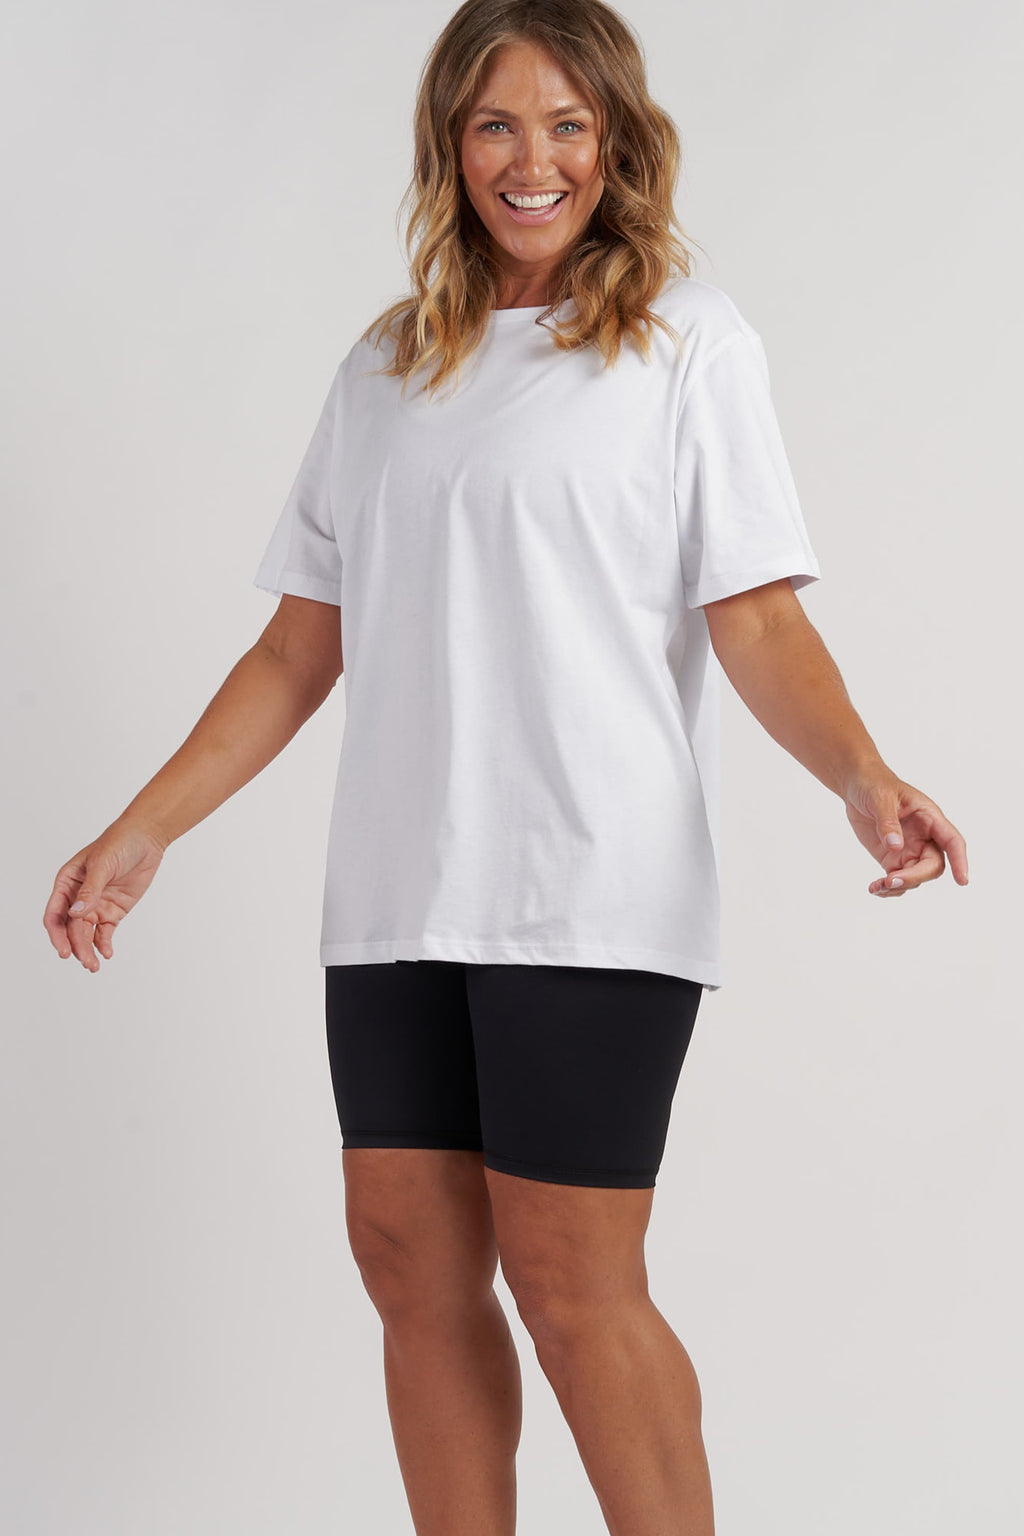 activewear-oversized-tee-white-large-side